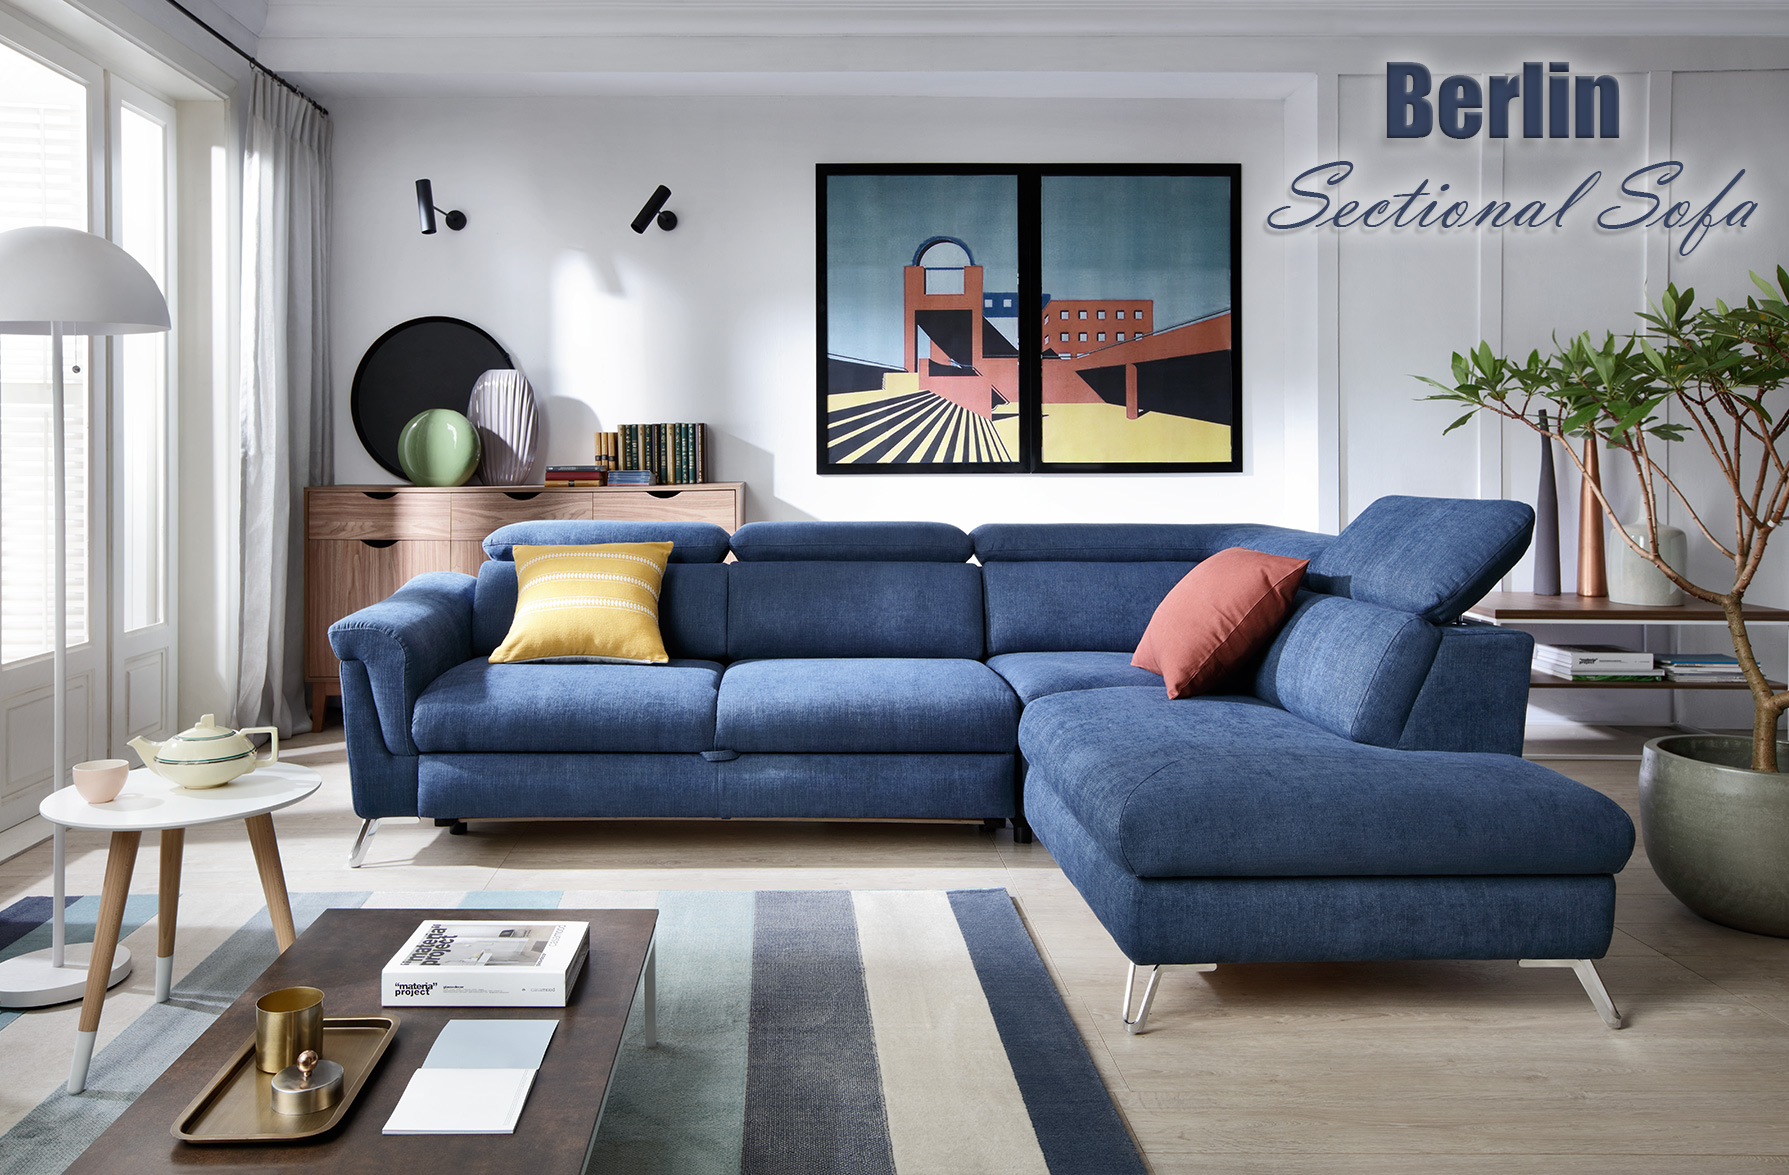 Sofa Berlin Design Berlin Sectional Sofa Nordholtz Furniture